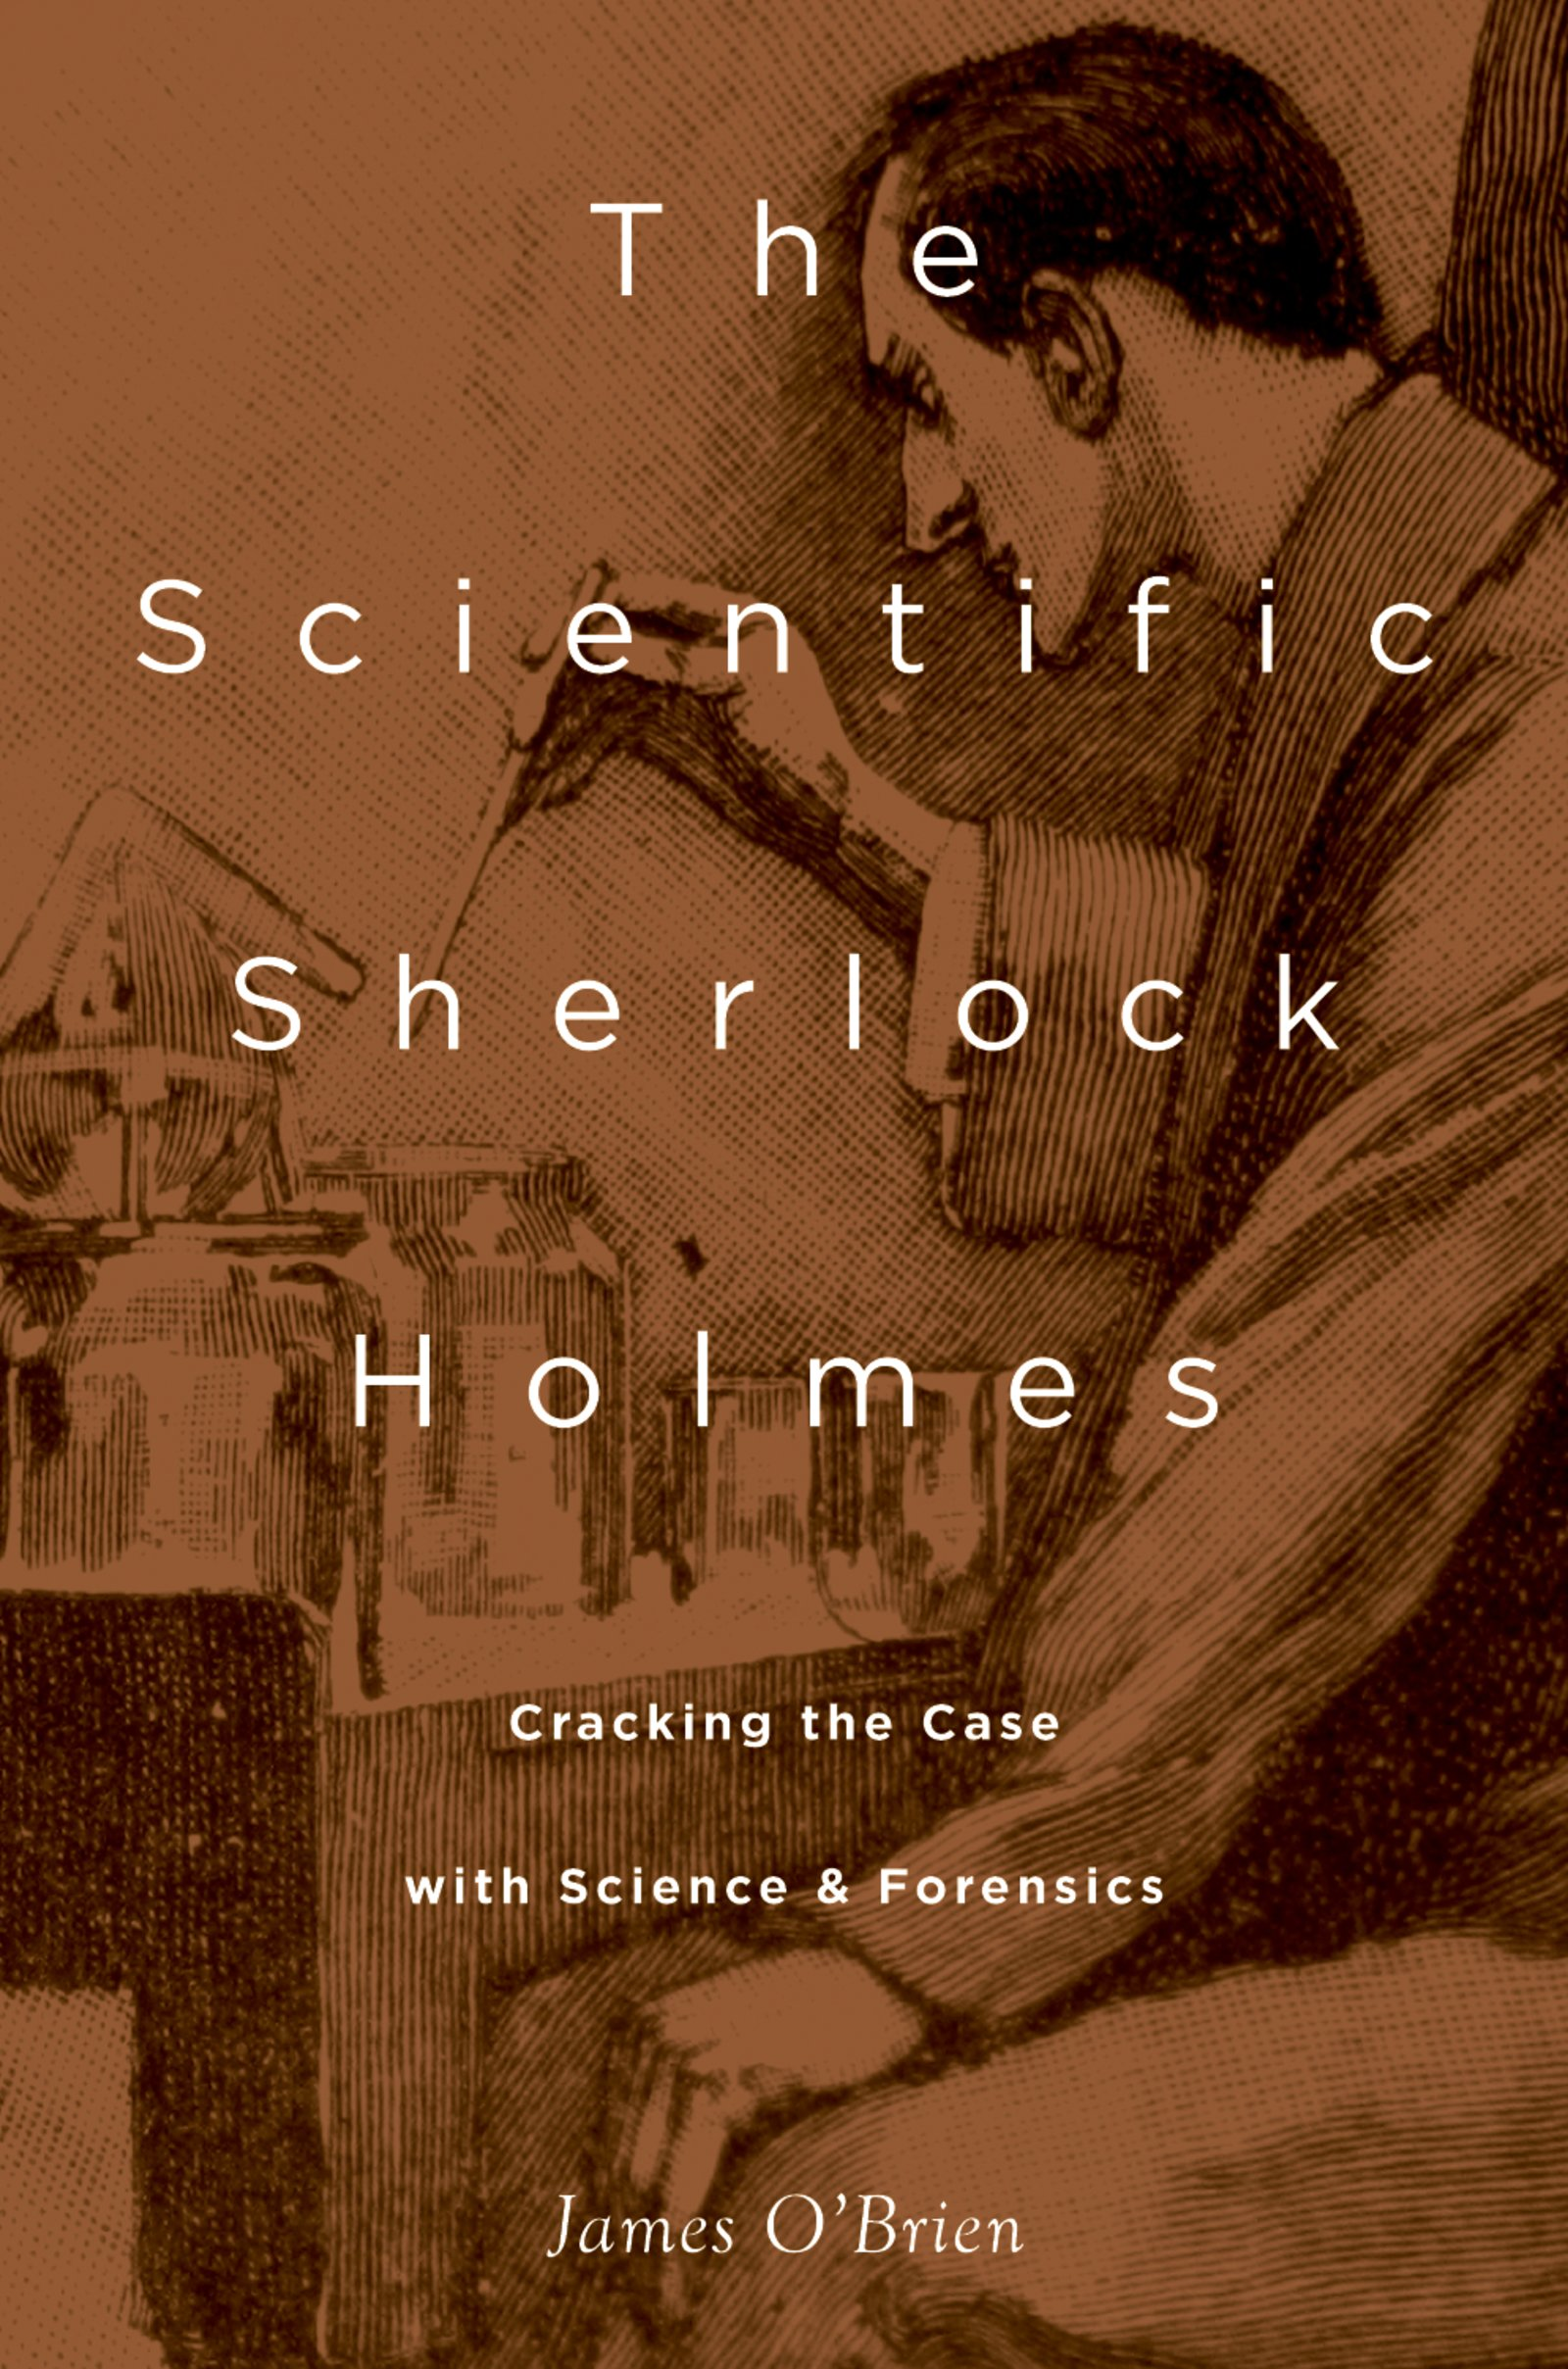 The Scientific Sherlock HolmesCracking the Case with Science and Forensics